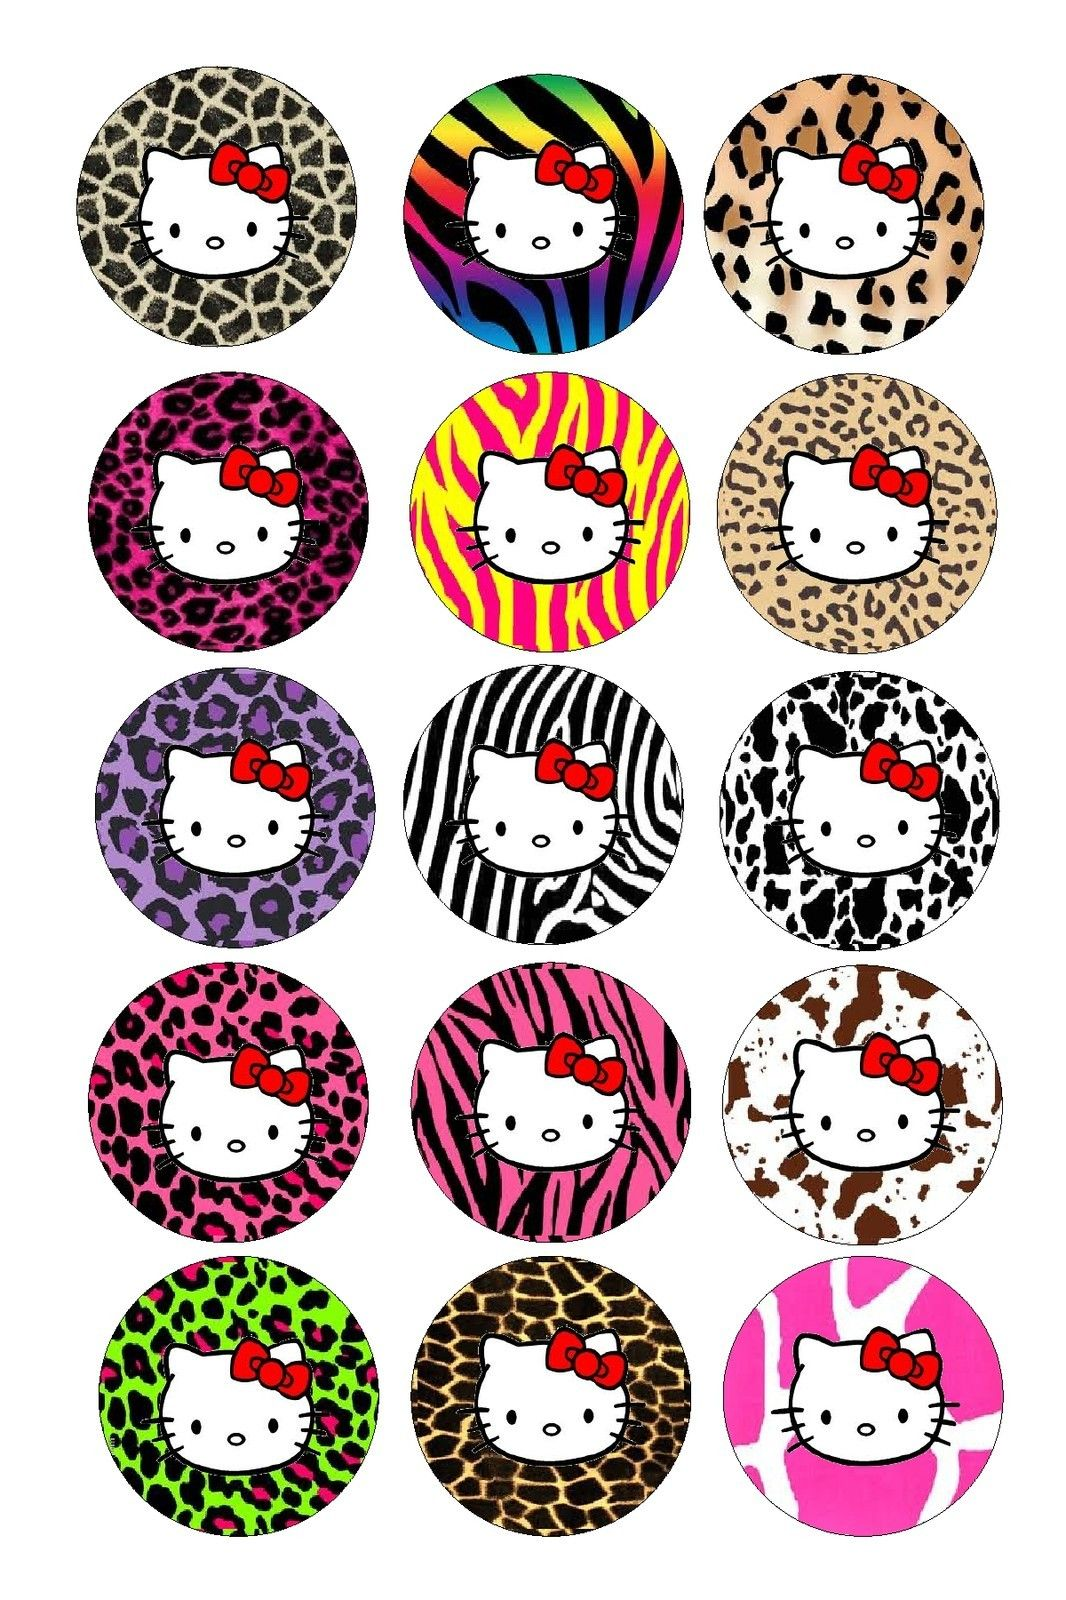 Scrapbook ideas hello kitty - Hello Kitty Animal Print 15 Precut Bottle Cap Diecut Hairbow Images Cute In Crafts Scrapbooking Paper Crafts Embellishments